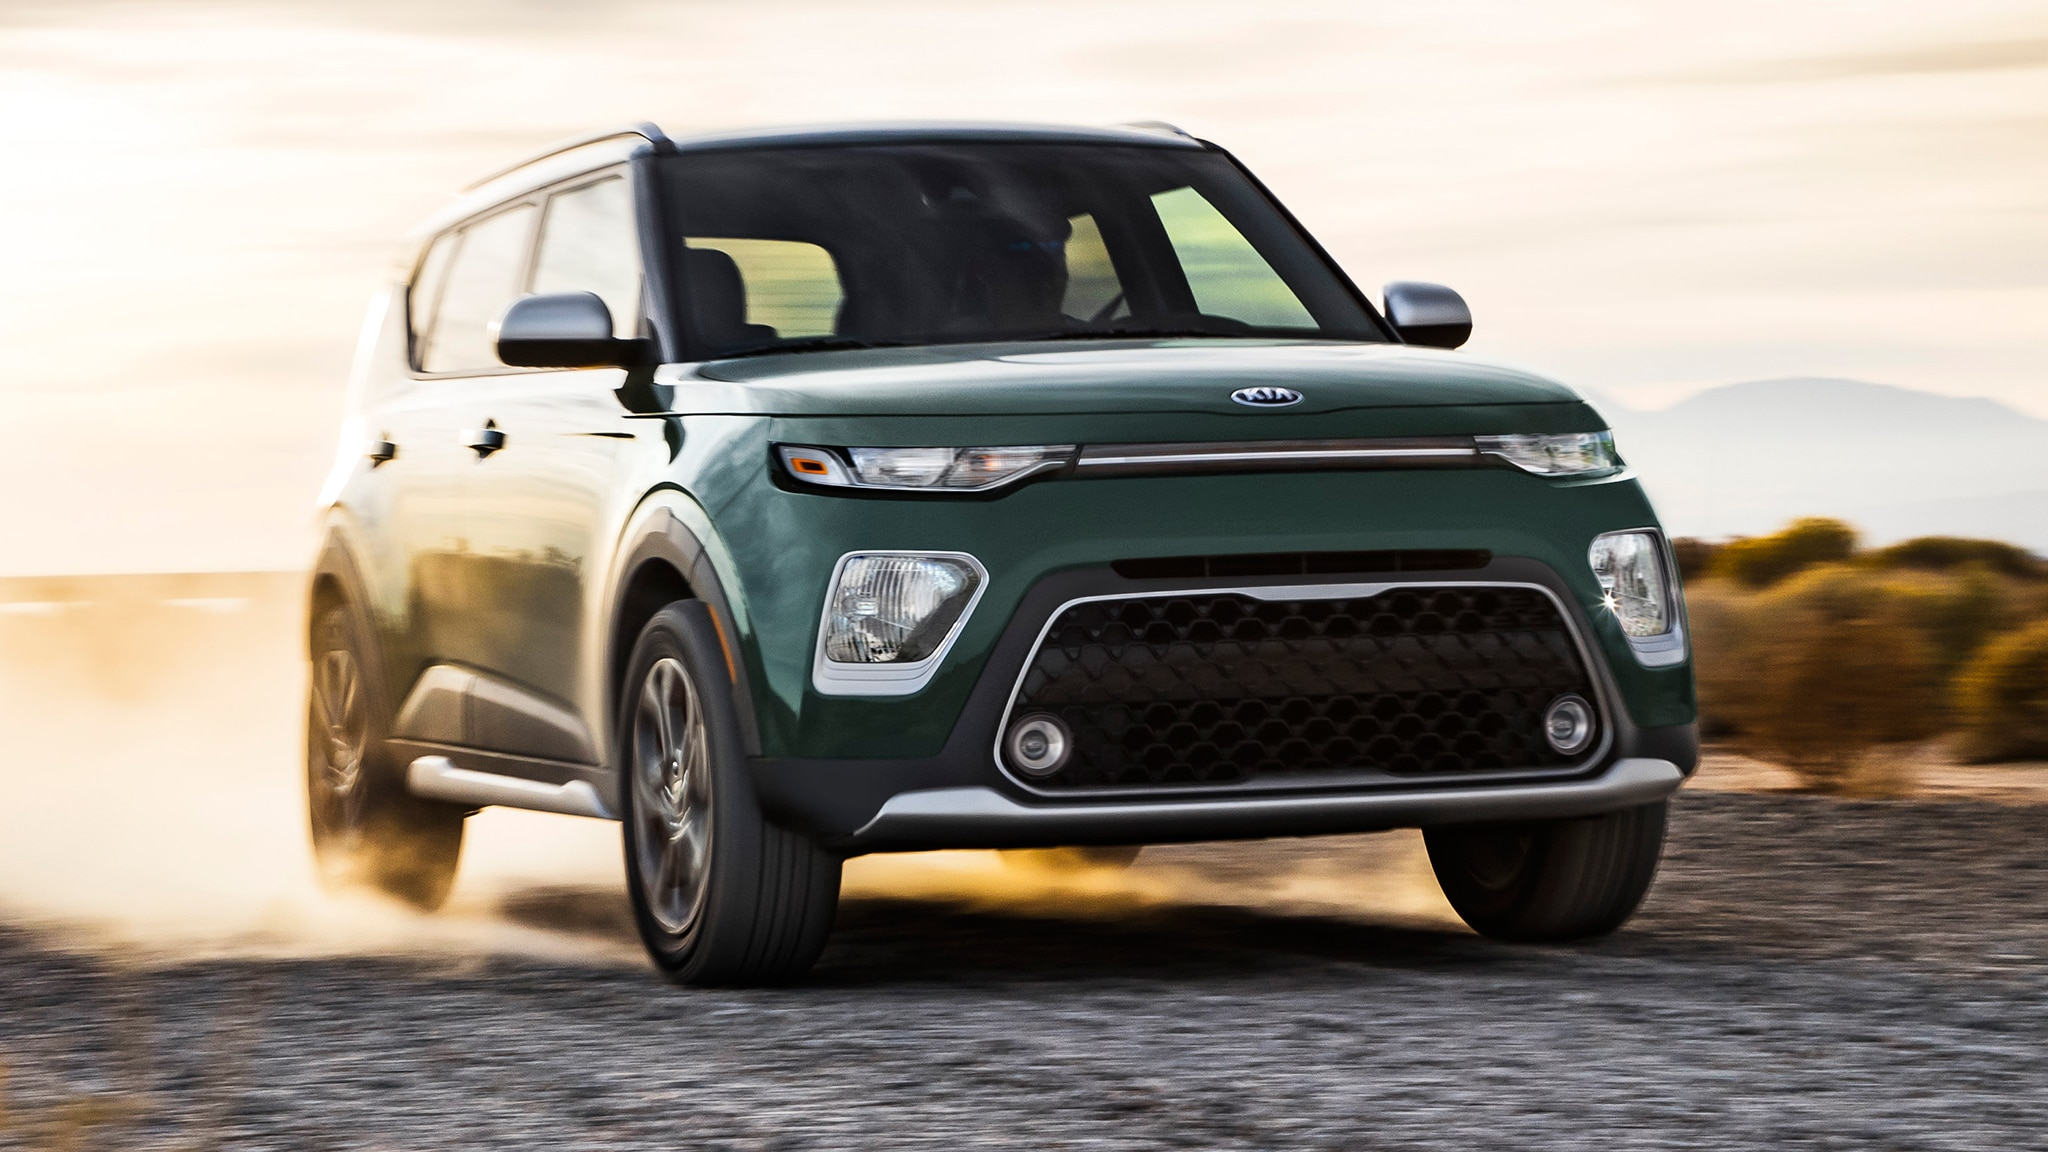 All-new 2020 Kia Soul gets an upgrade in style